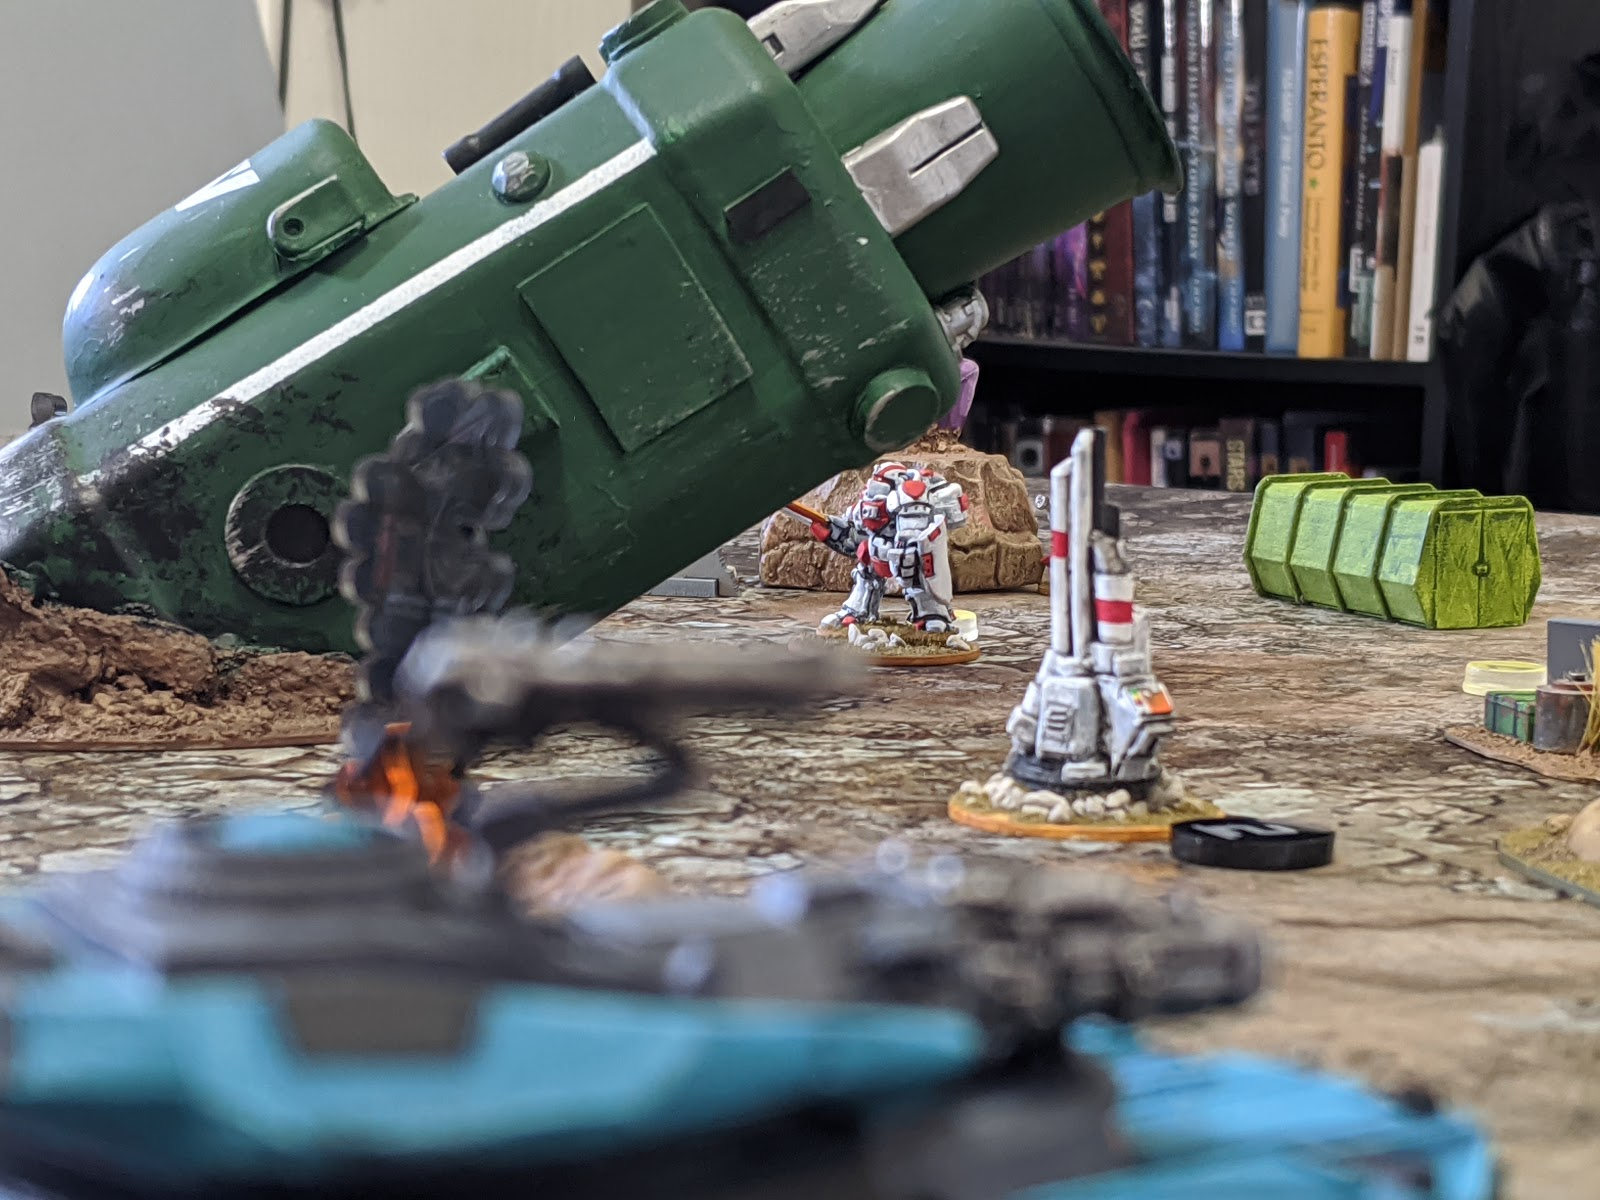 A blue tank sighting in on a white power suit near a crashed green ship.